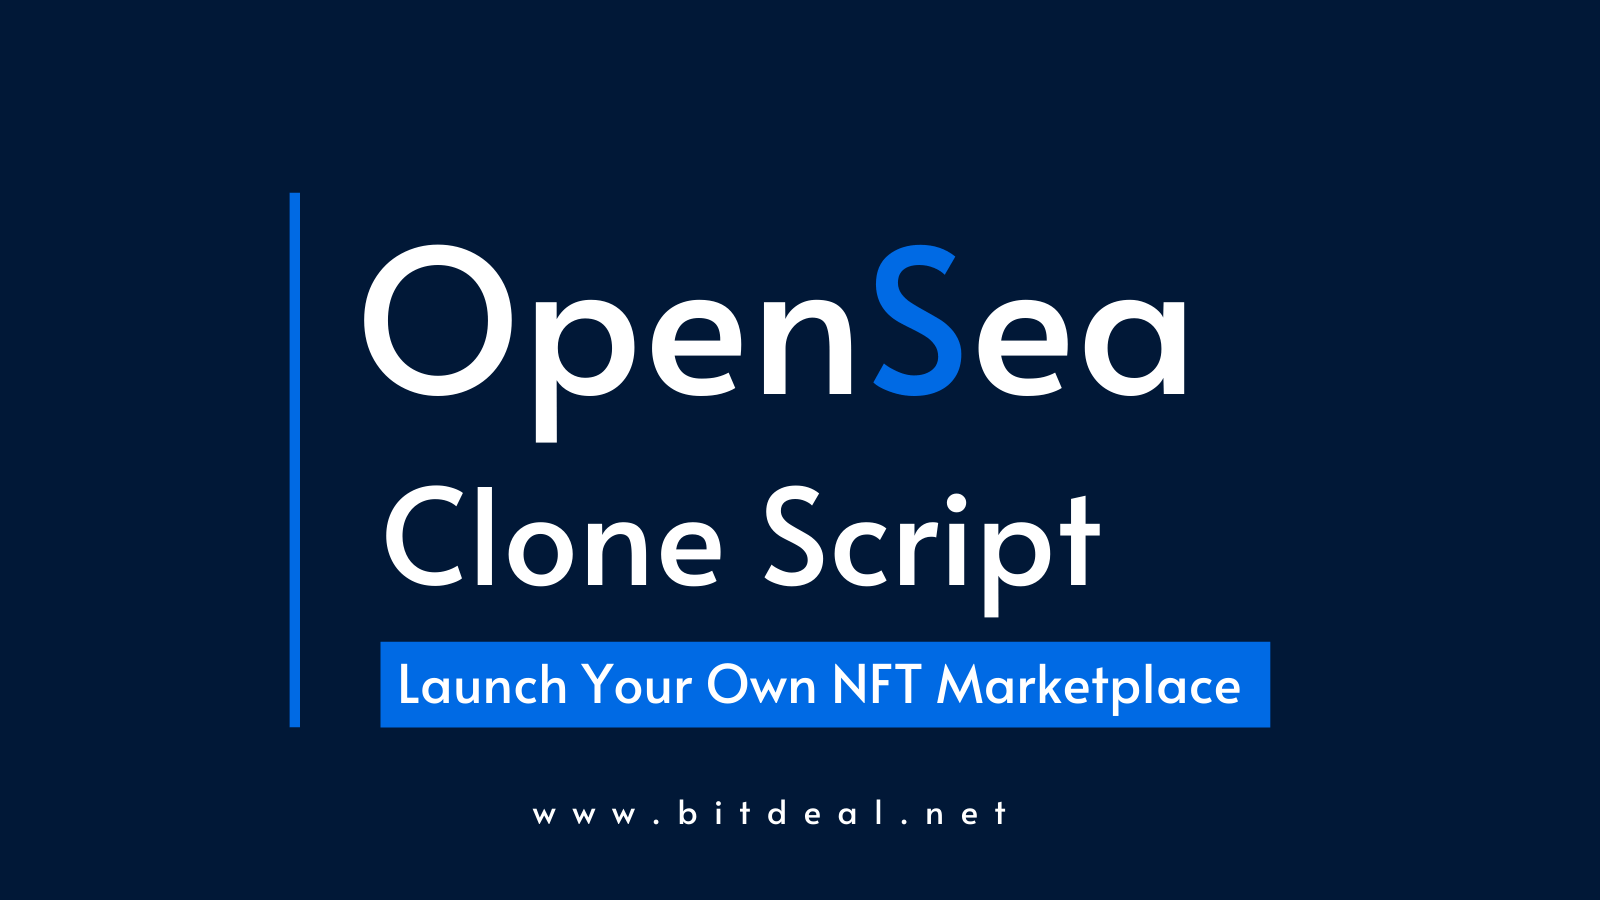 OpenSea Clone Script - A Solution To Launch Billion Dollar Worth NFT Marketplace